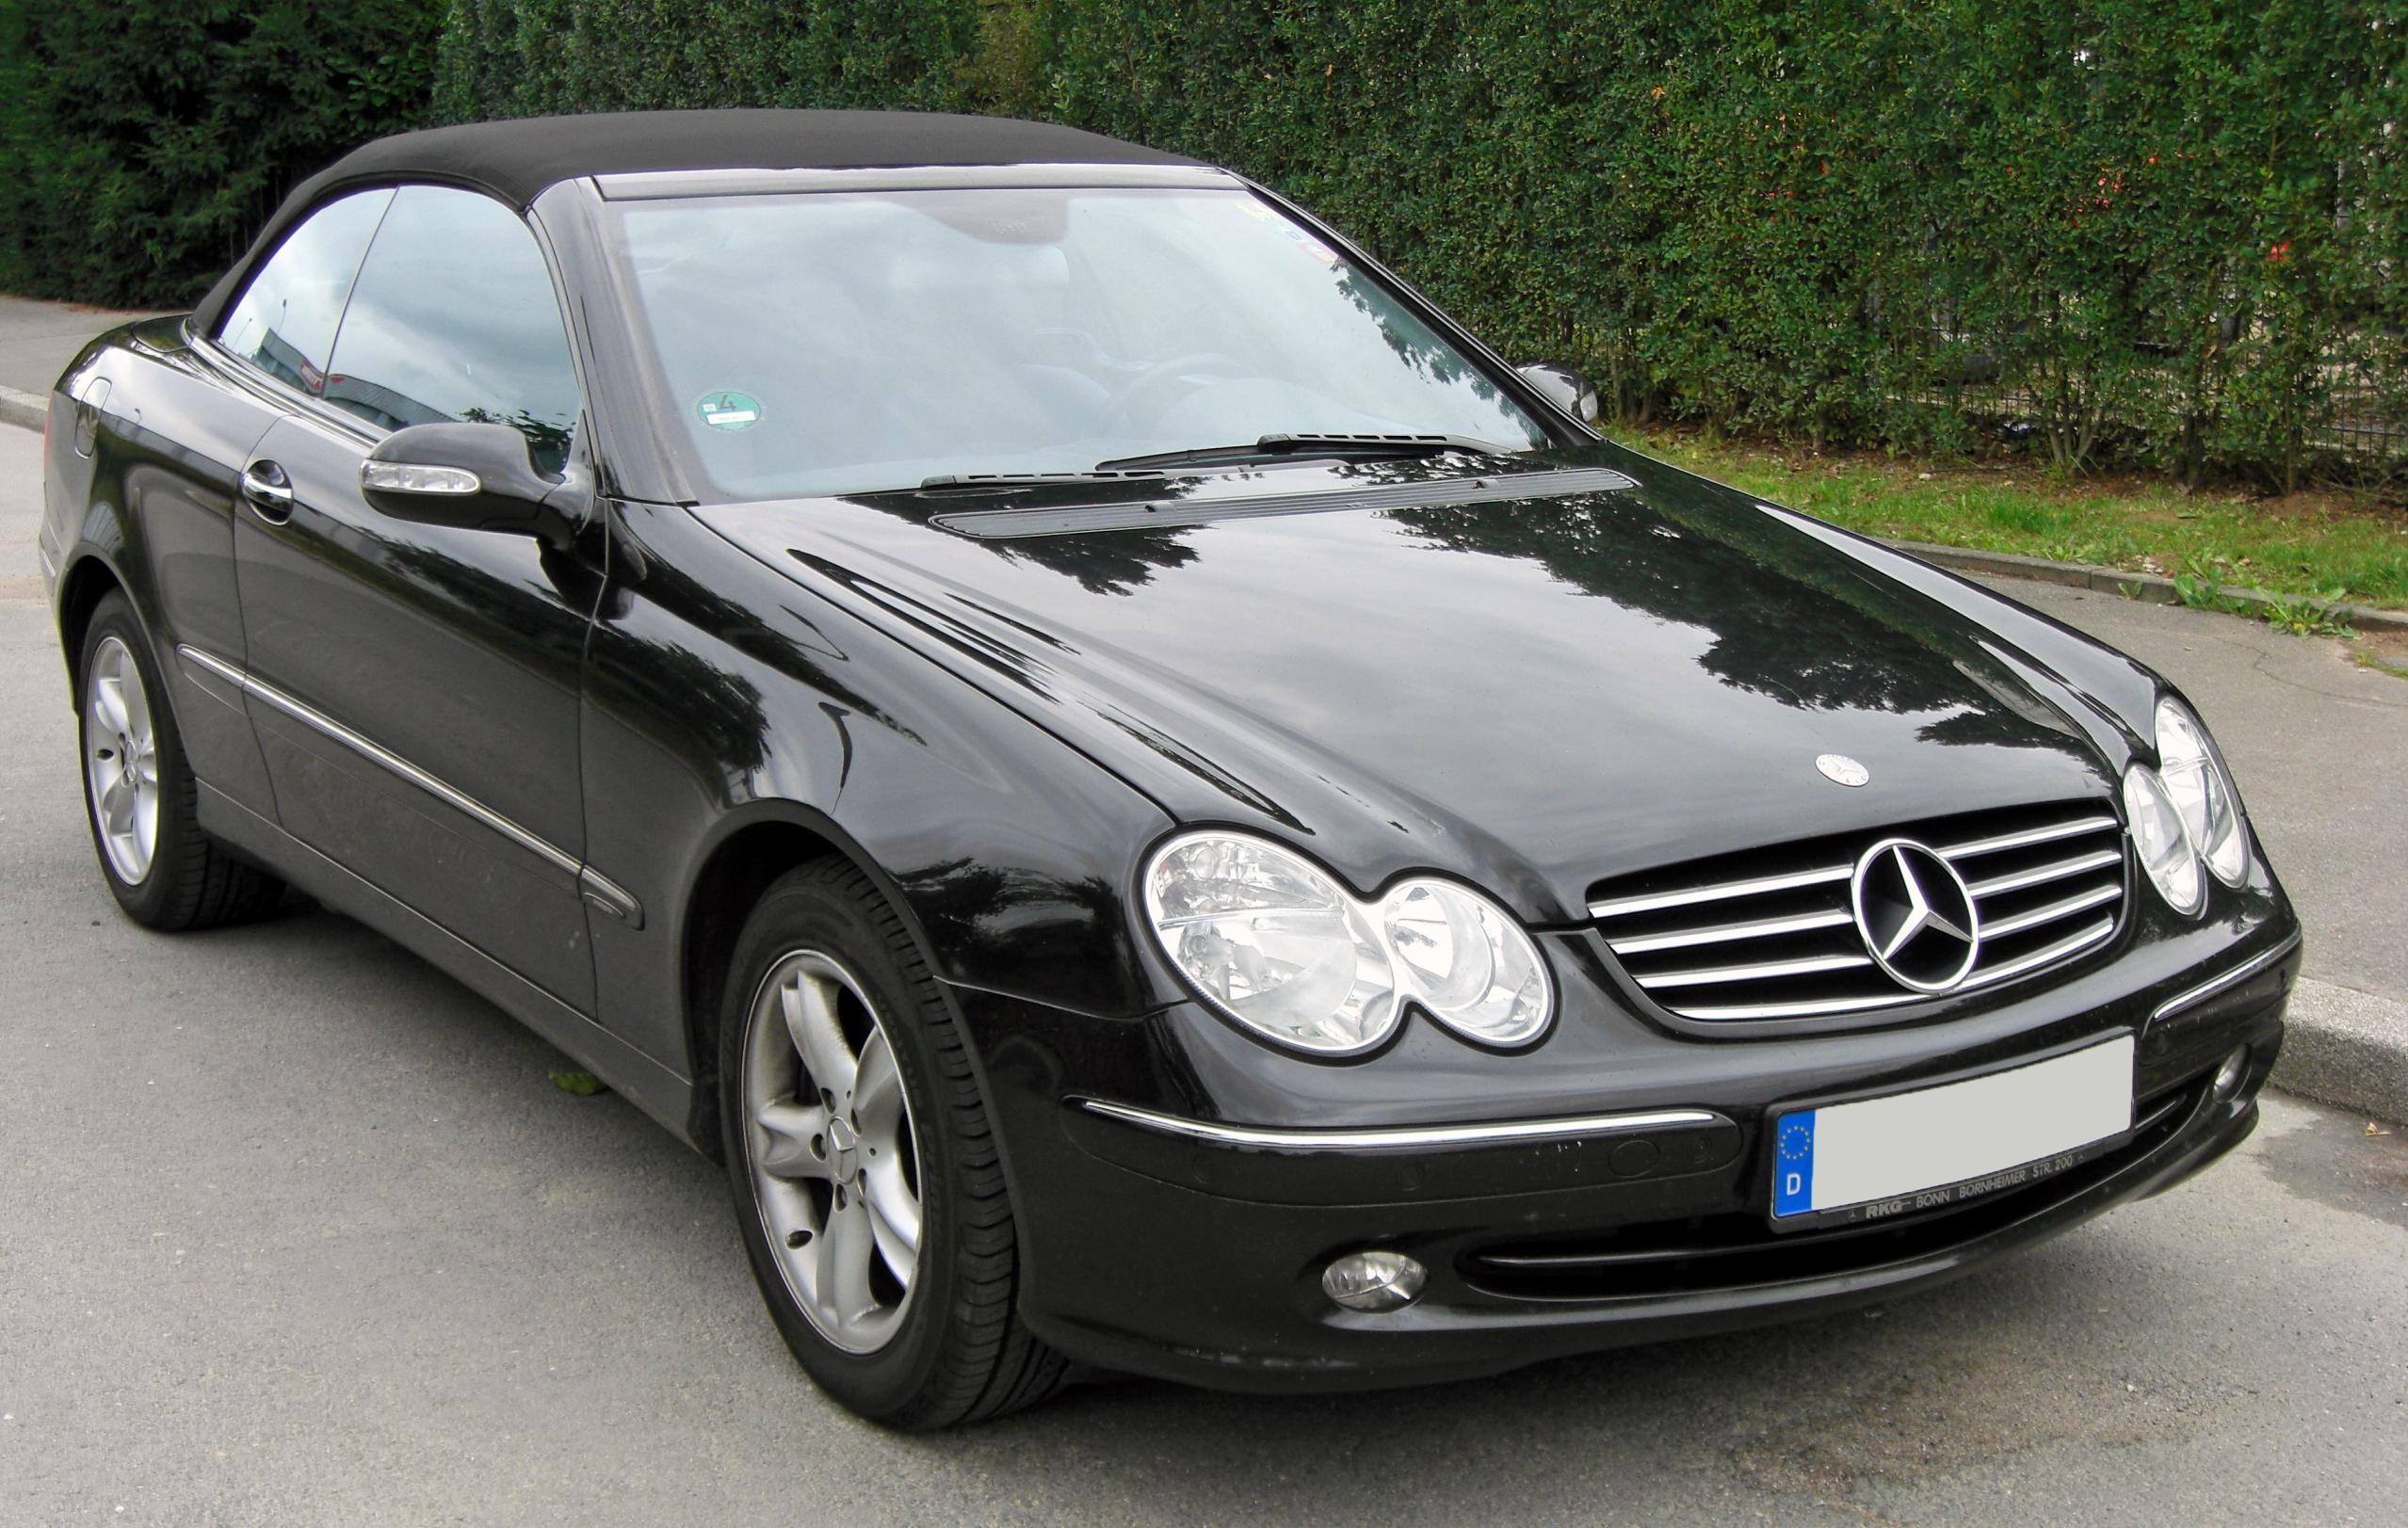 file mercedes clk cabriolet a209 20090712 front jpg wikimedia commons. Black Bedroom Furniture Sets. Home Design Ideas